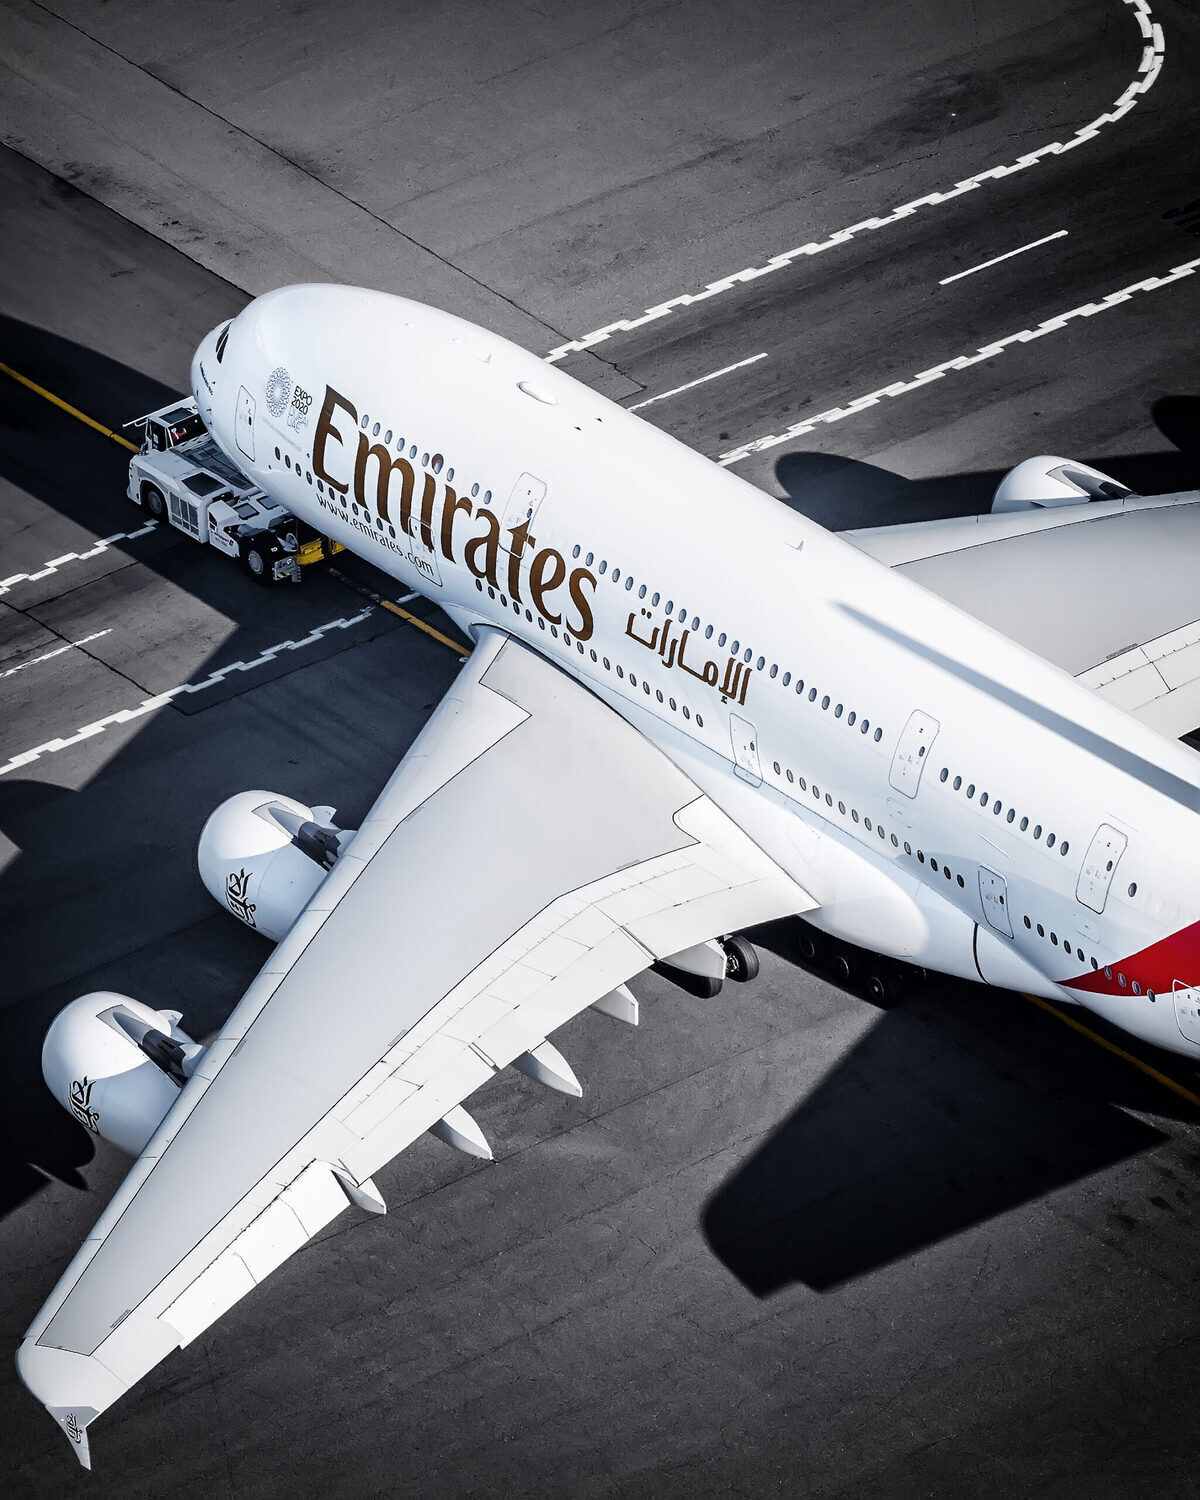 Emirates Will Resume Flights To Nigeria & South Africa This Week